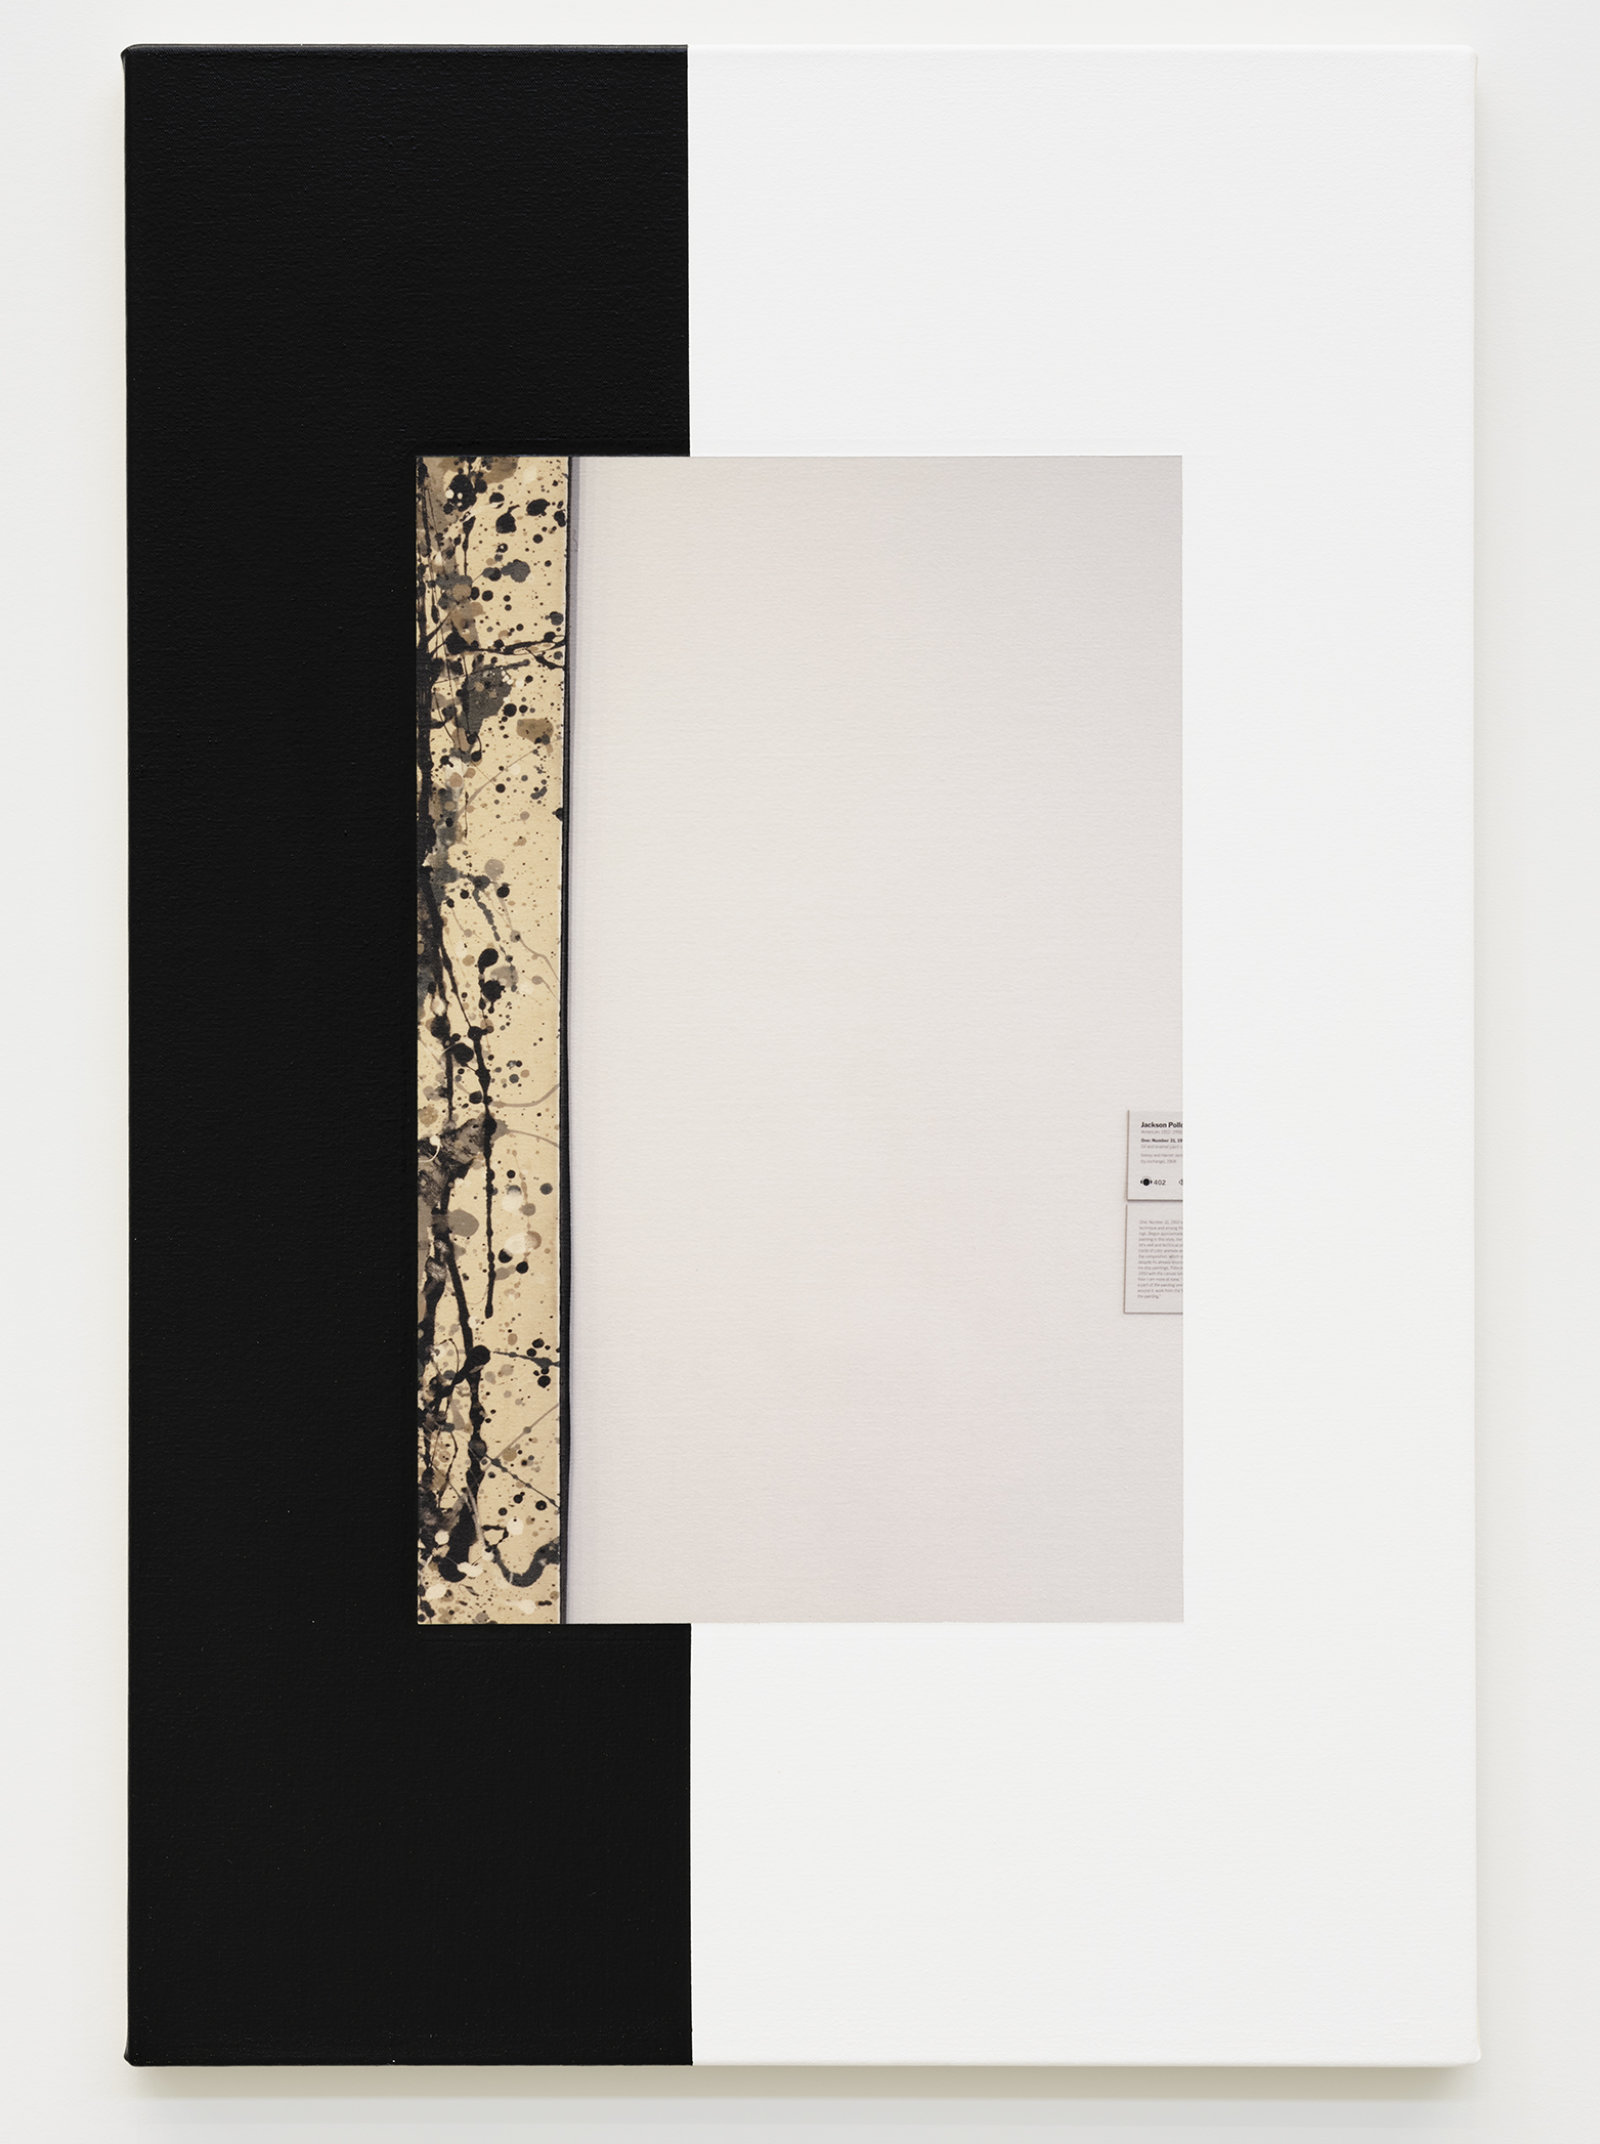 Ian Wallace, Abstract Composition (with Pollock), 2011, photolaminate with acrylic on canvas, 36 x 24 in. (91 x 61 cm) by Ian Wallace